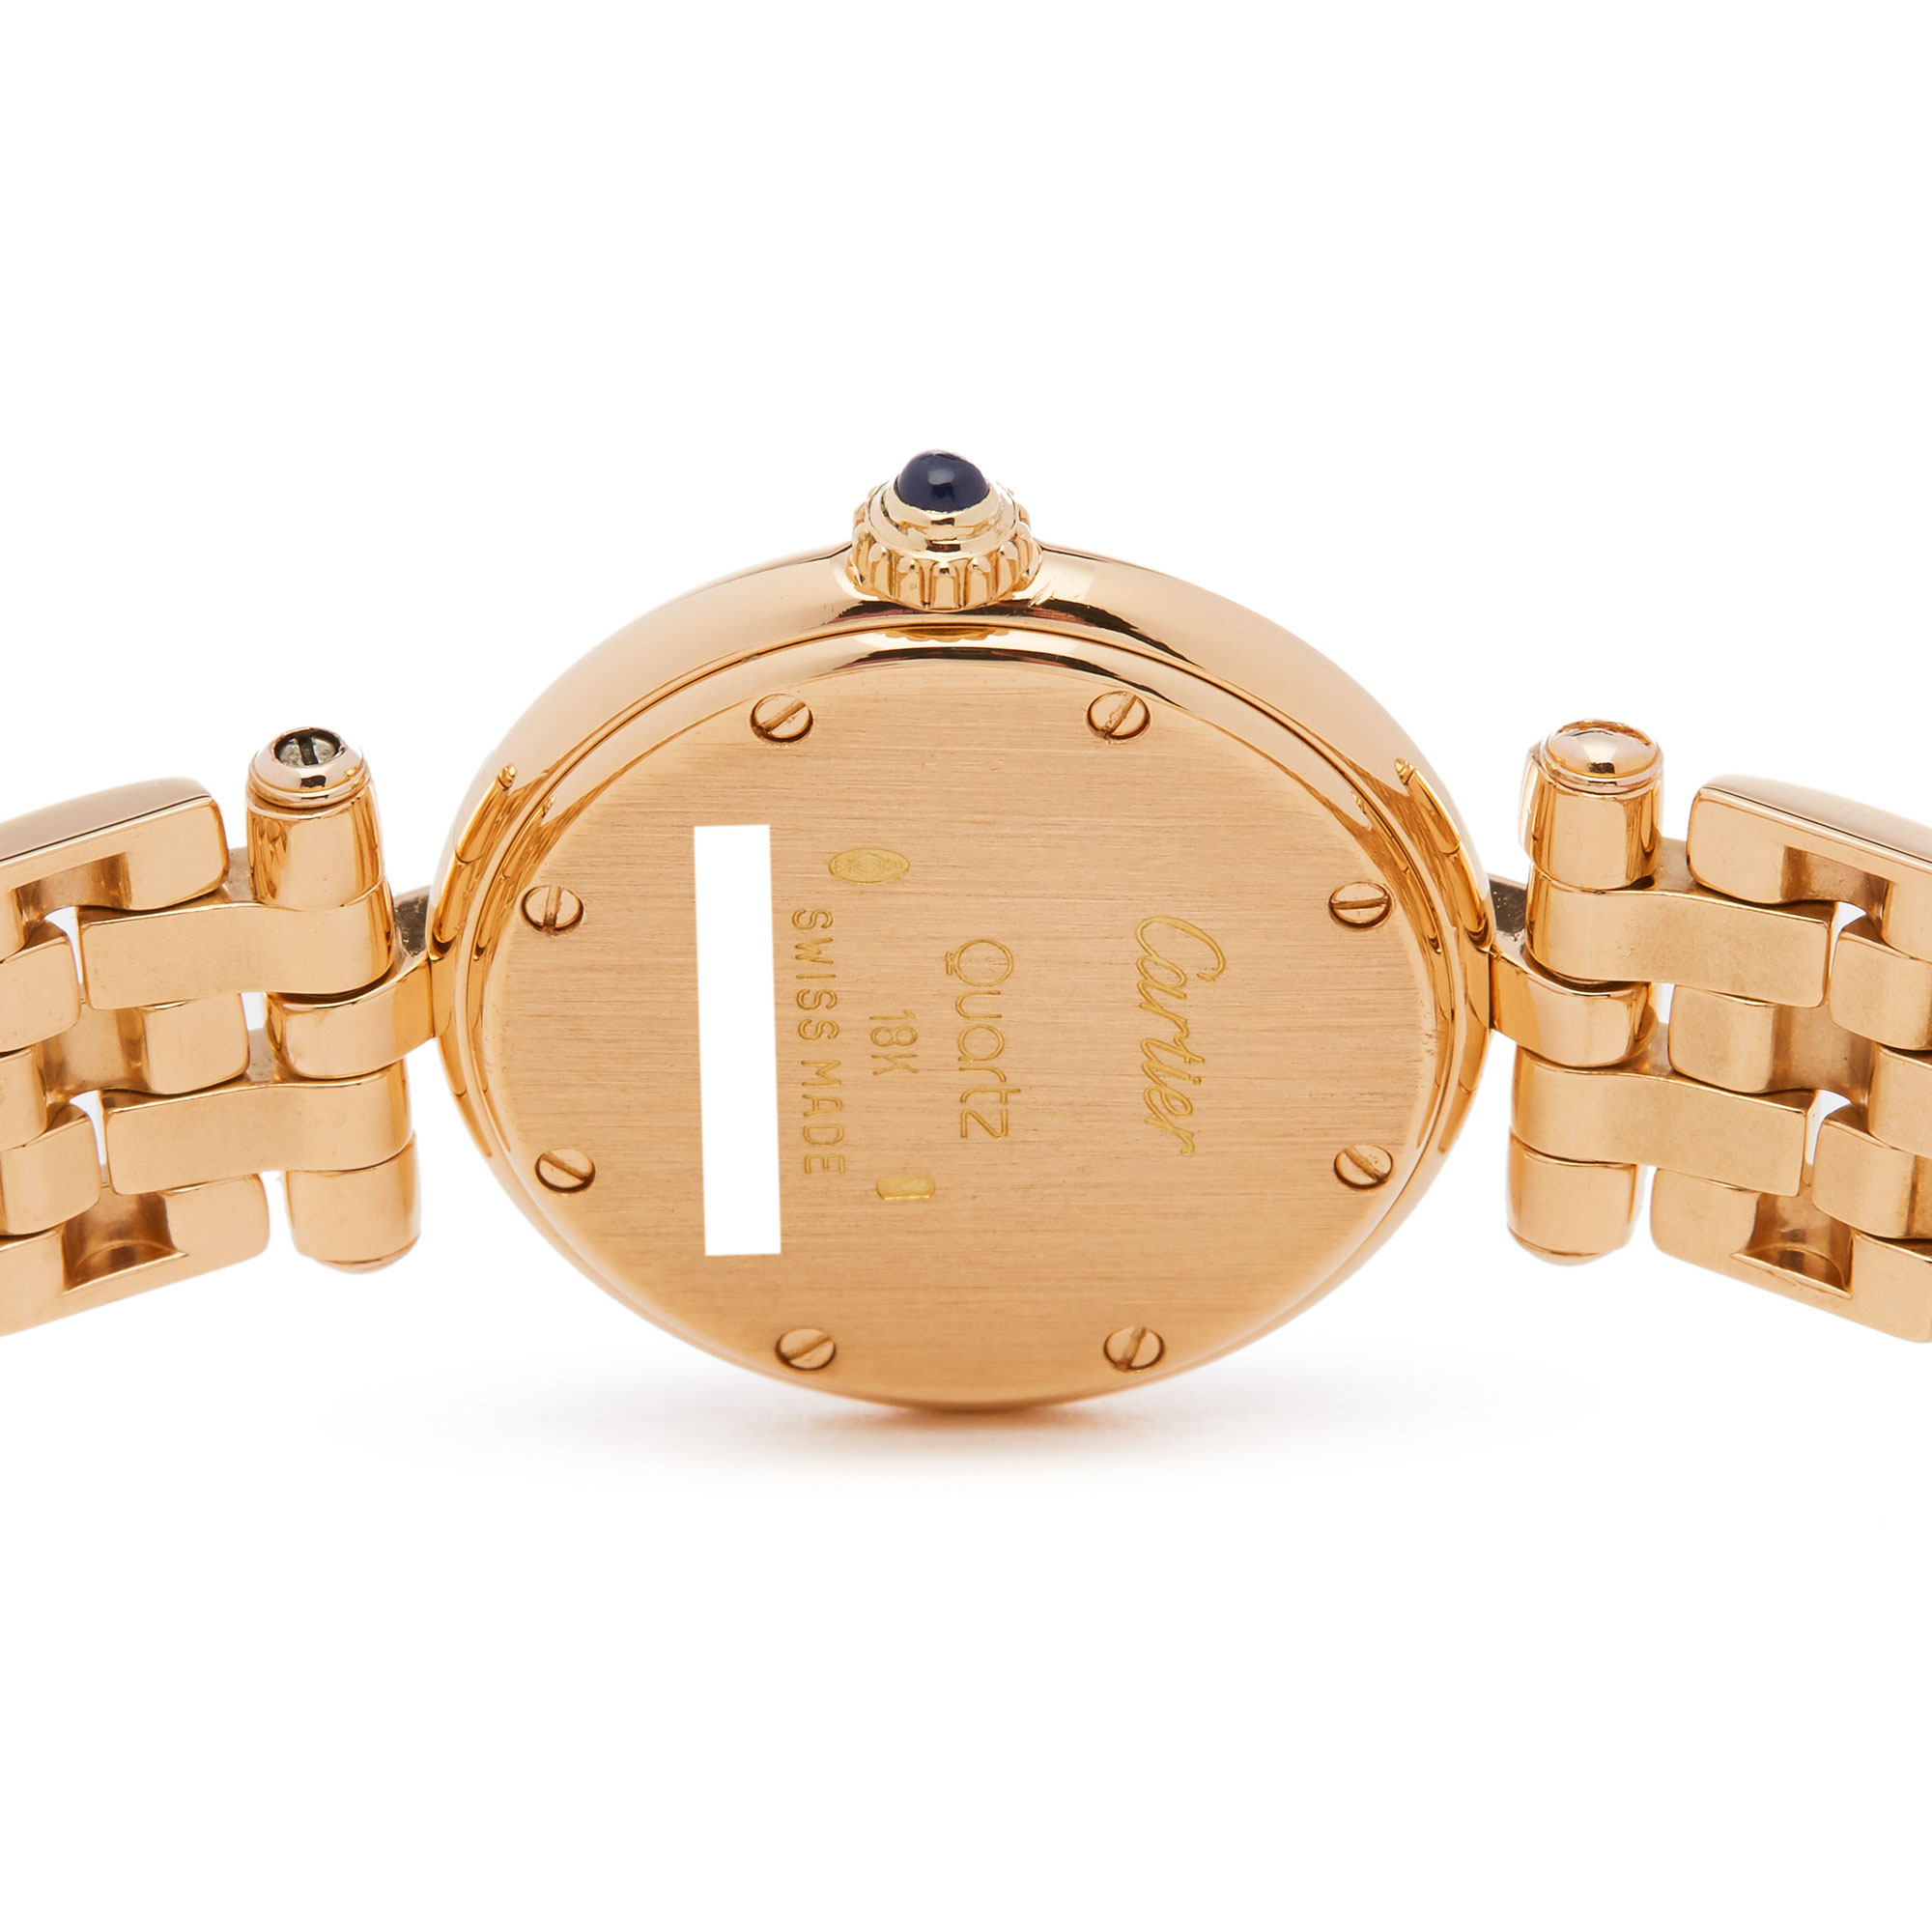 Cartier Panthère Vendome Ladies Yellow Gold Watch - Image 4 of 9